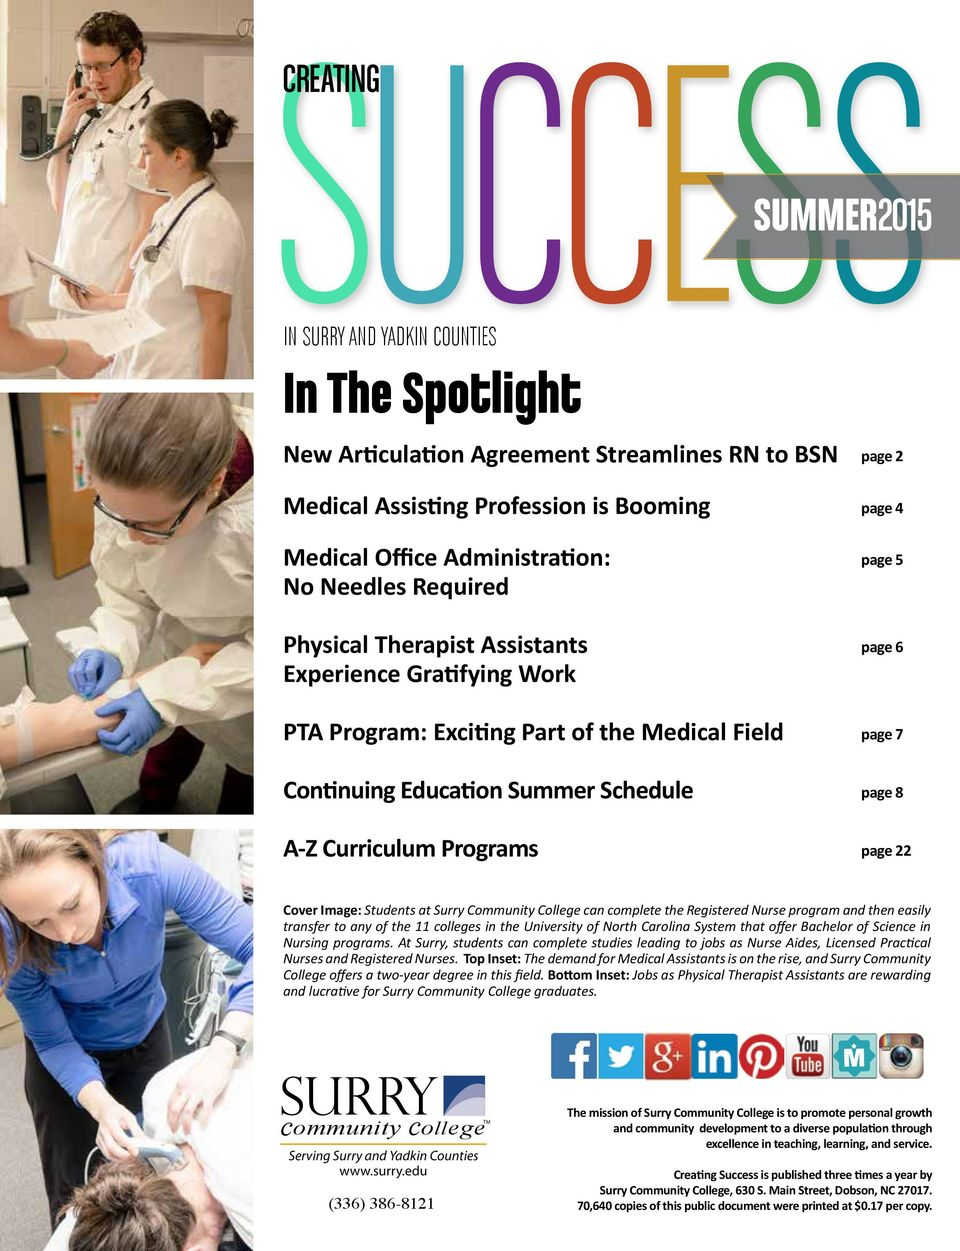 page 5 page 6 page 7 page 8 page 22 Cover Image: Students at Surry Community College can complete the Registered Nurse program and then easily transfer to any of the 11 colleges in the University of